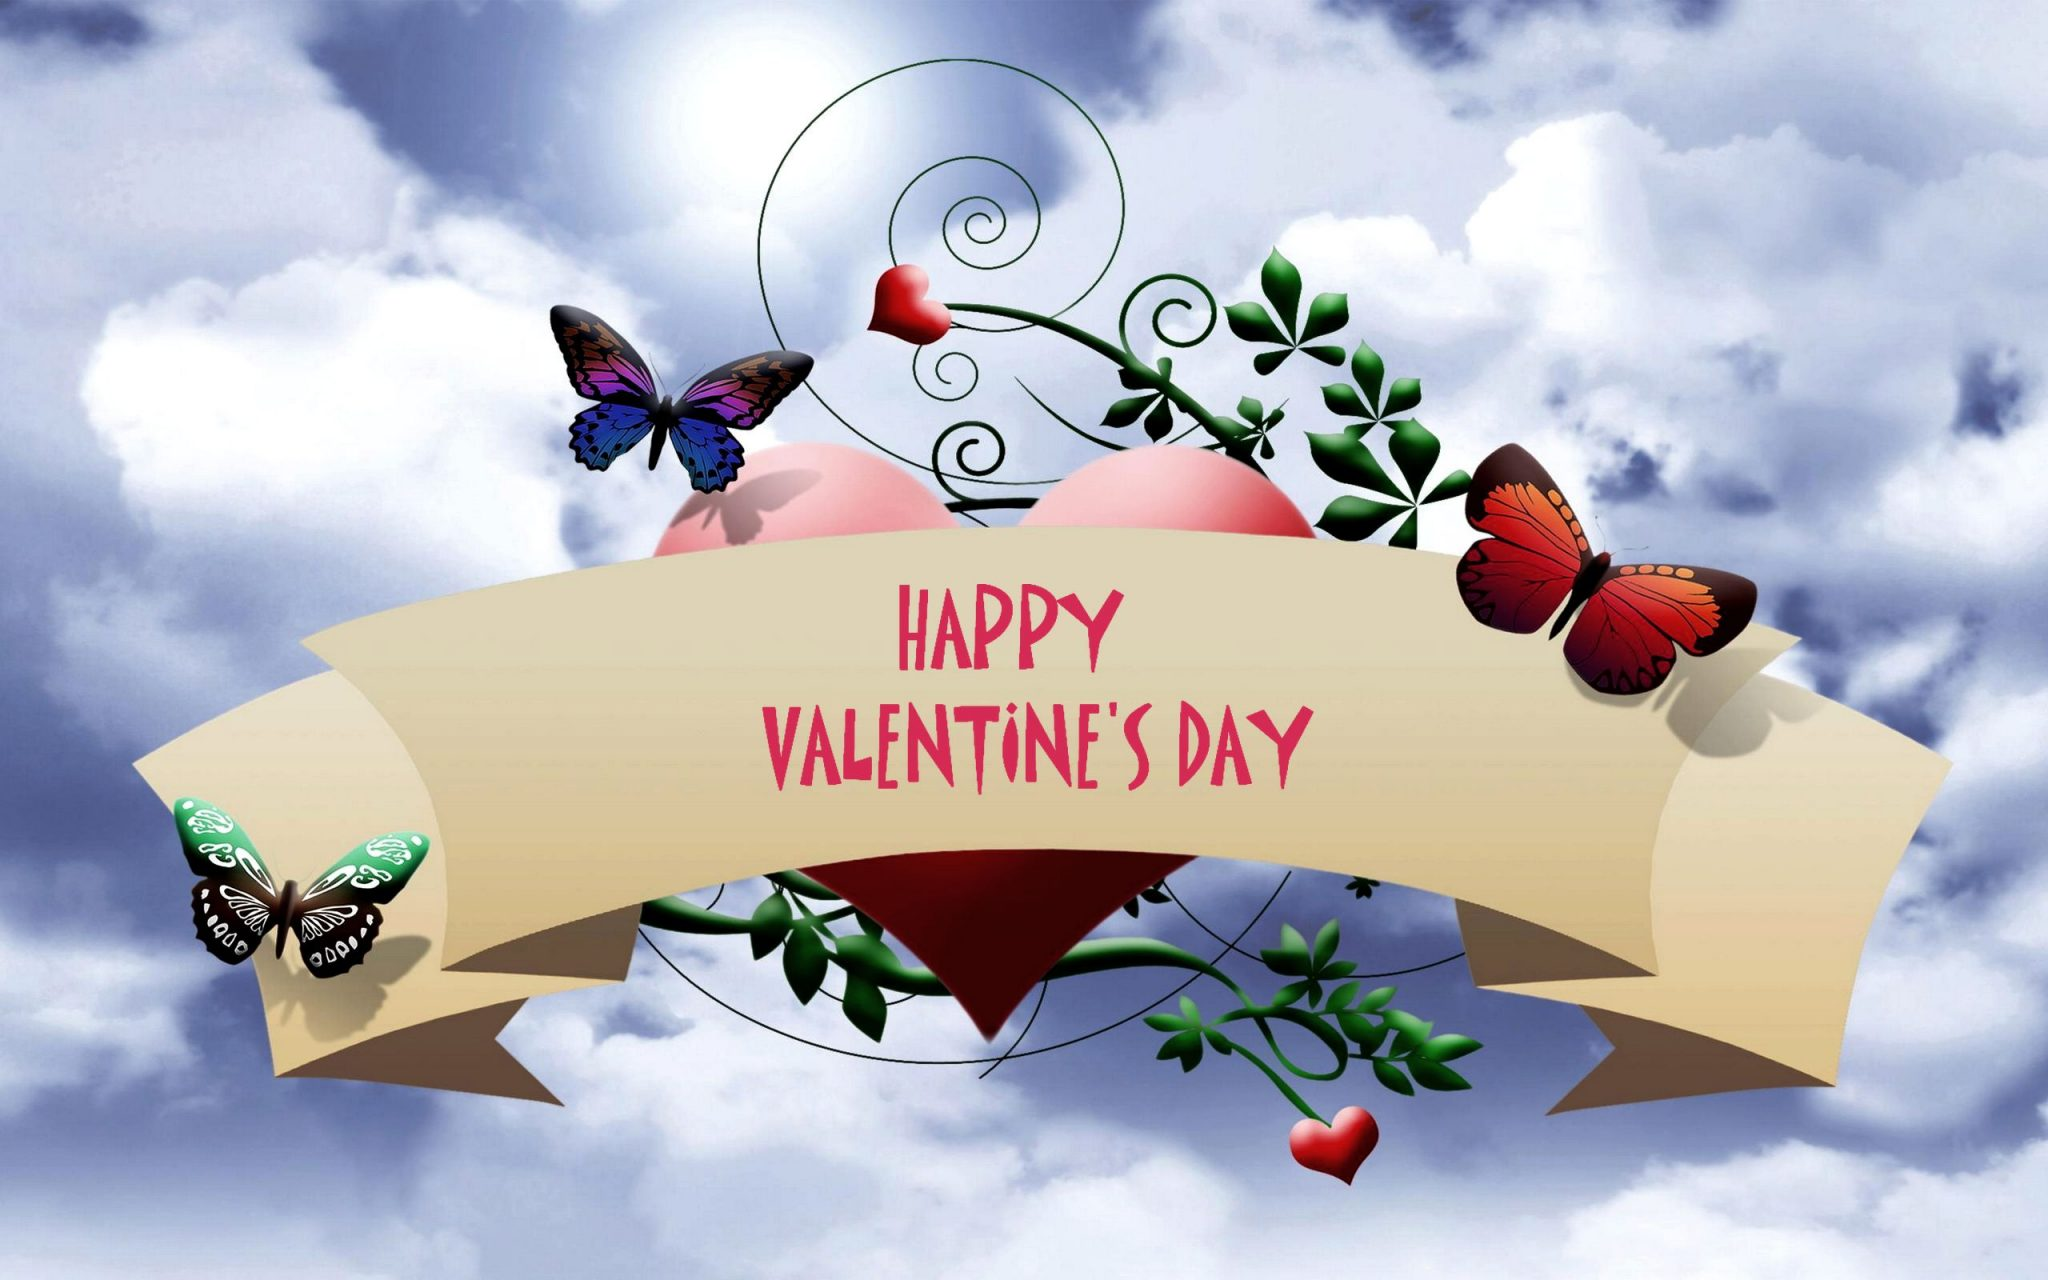 Happy-Valentines-Day-wallpaper-hd-2017-01